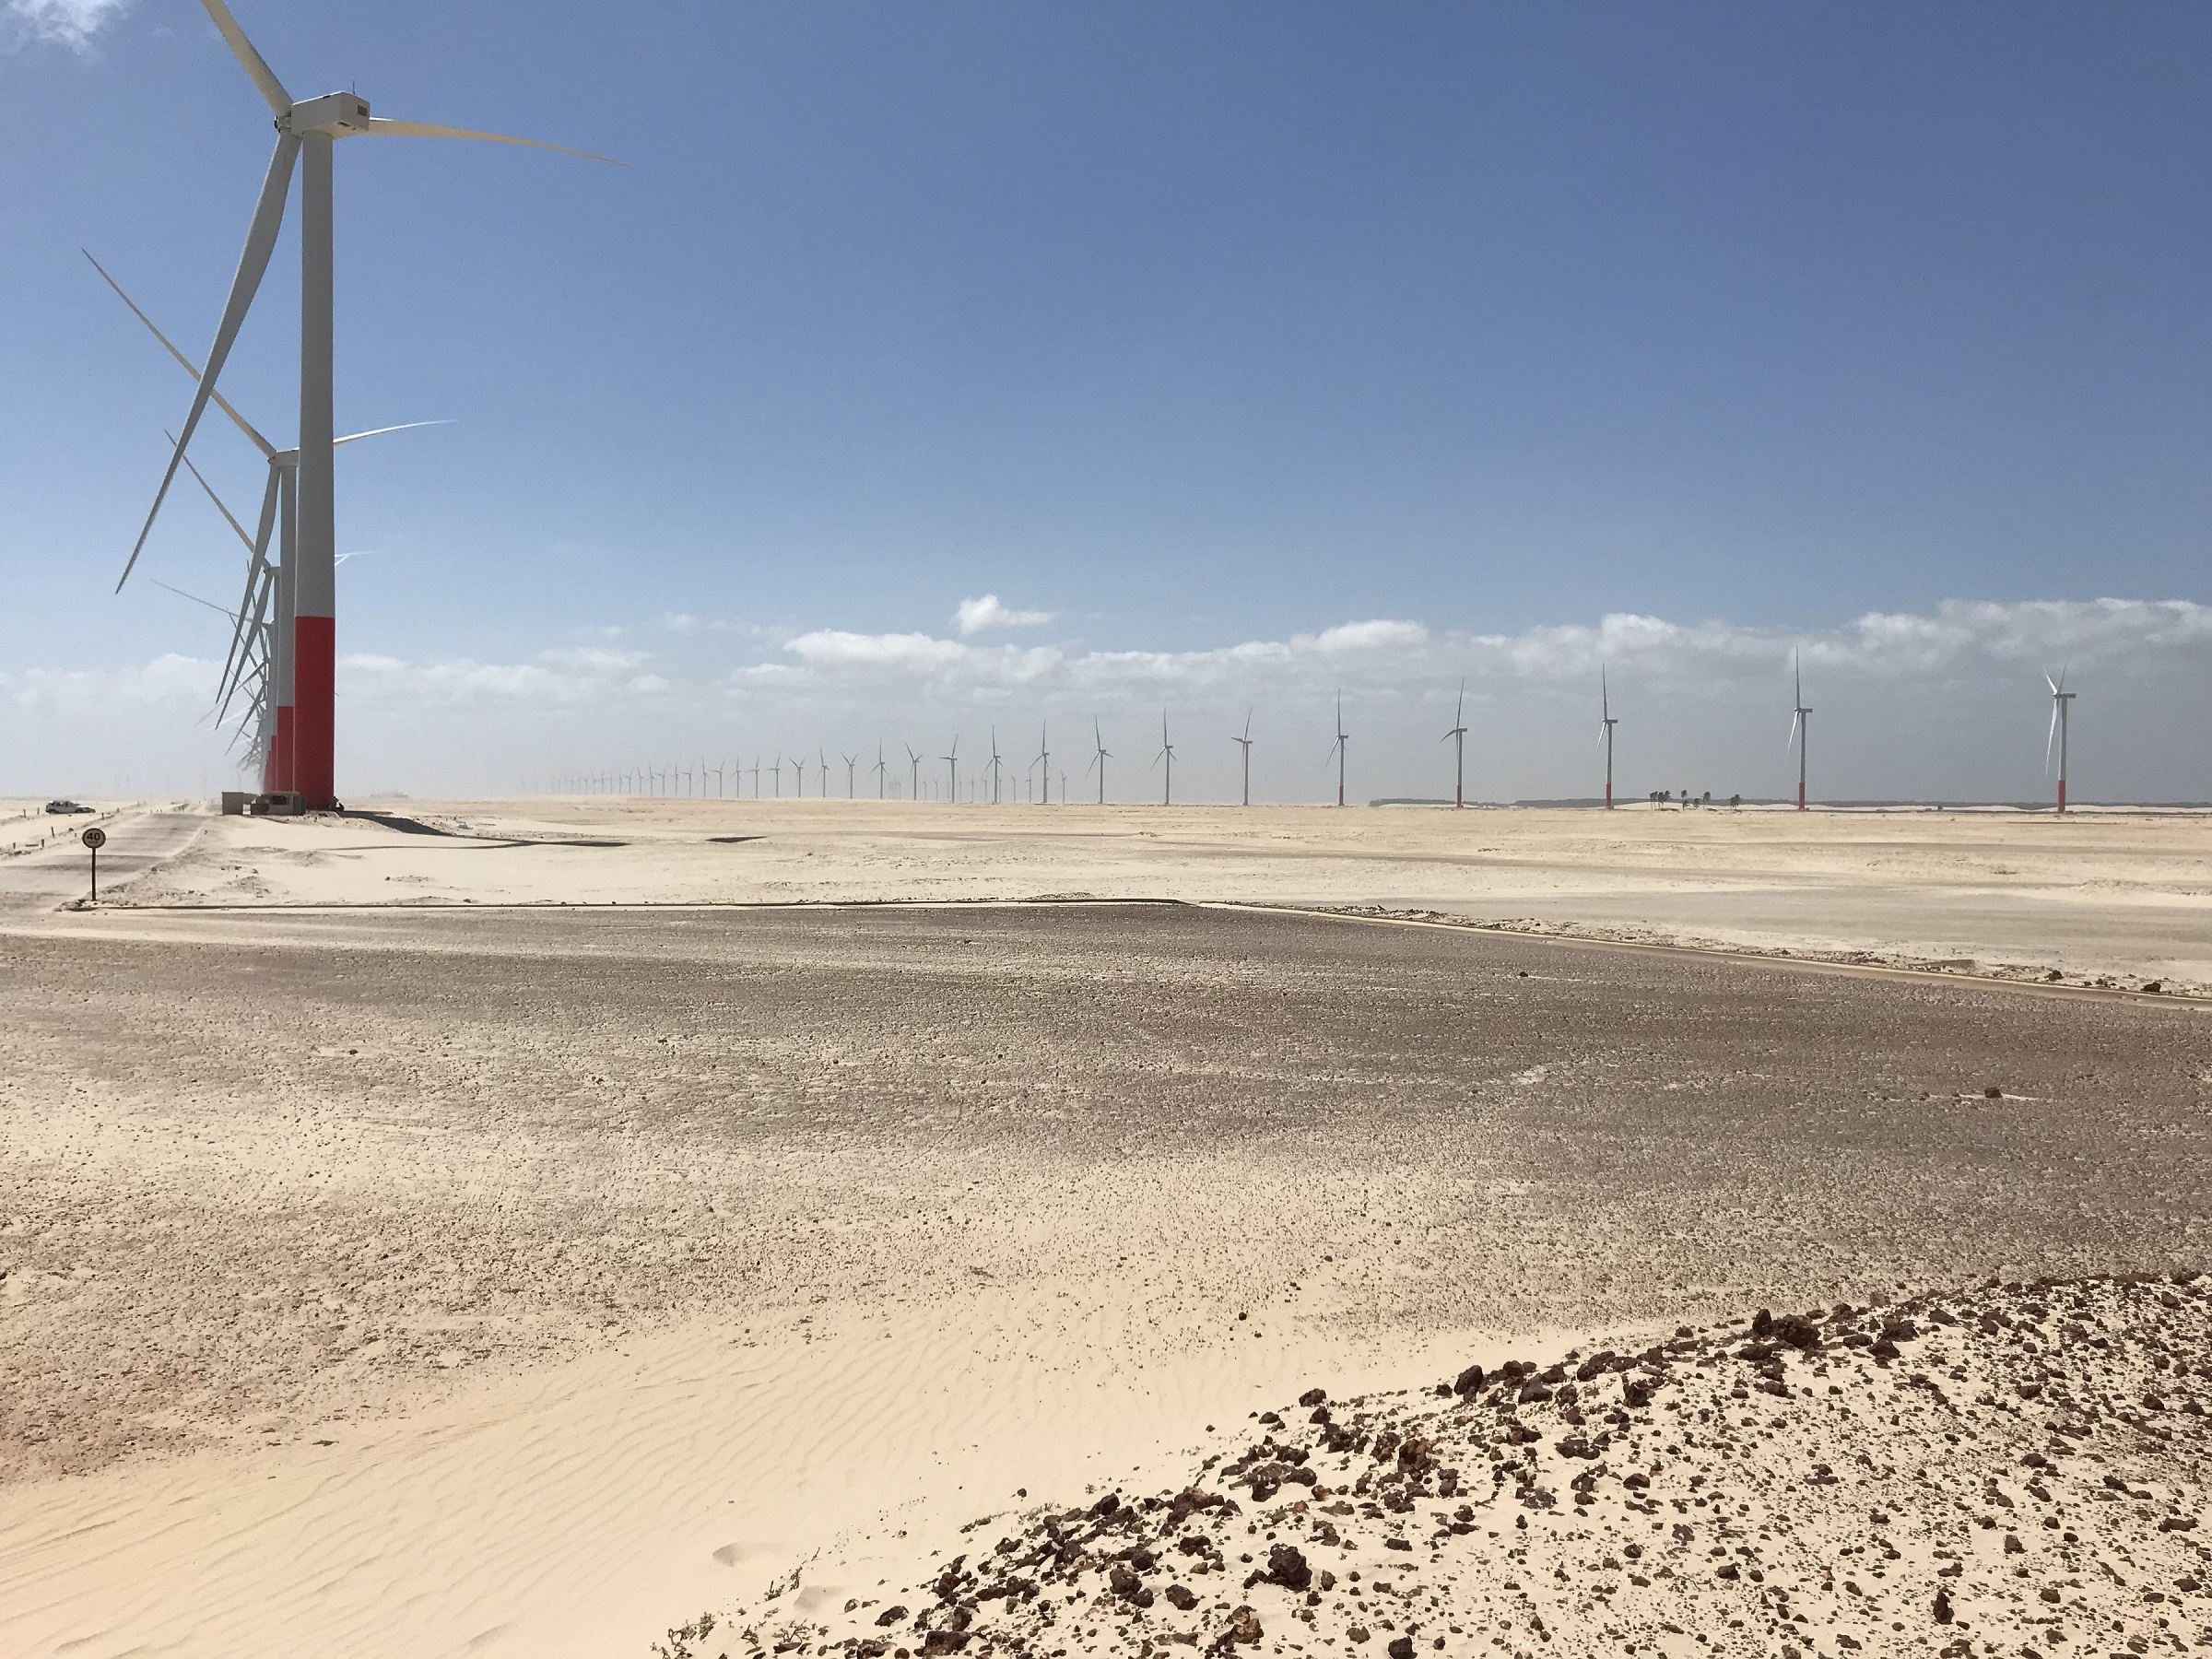 Rosatom commissions phase 1 of 150MW wind project